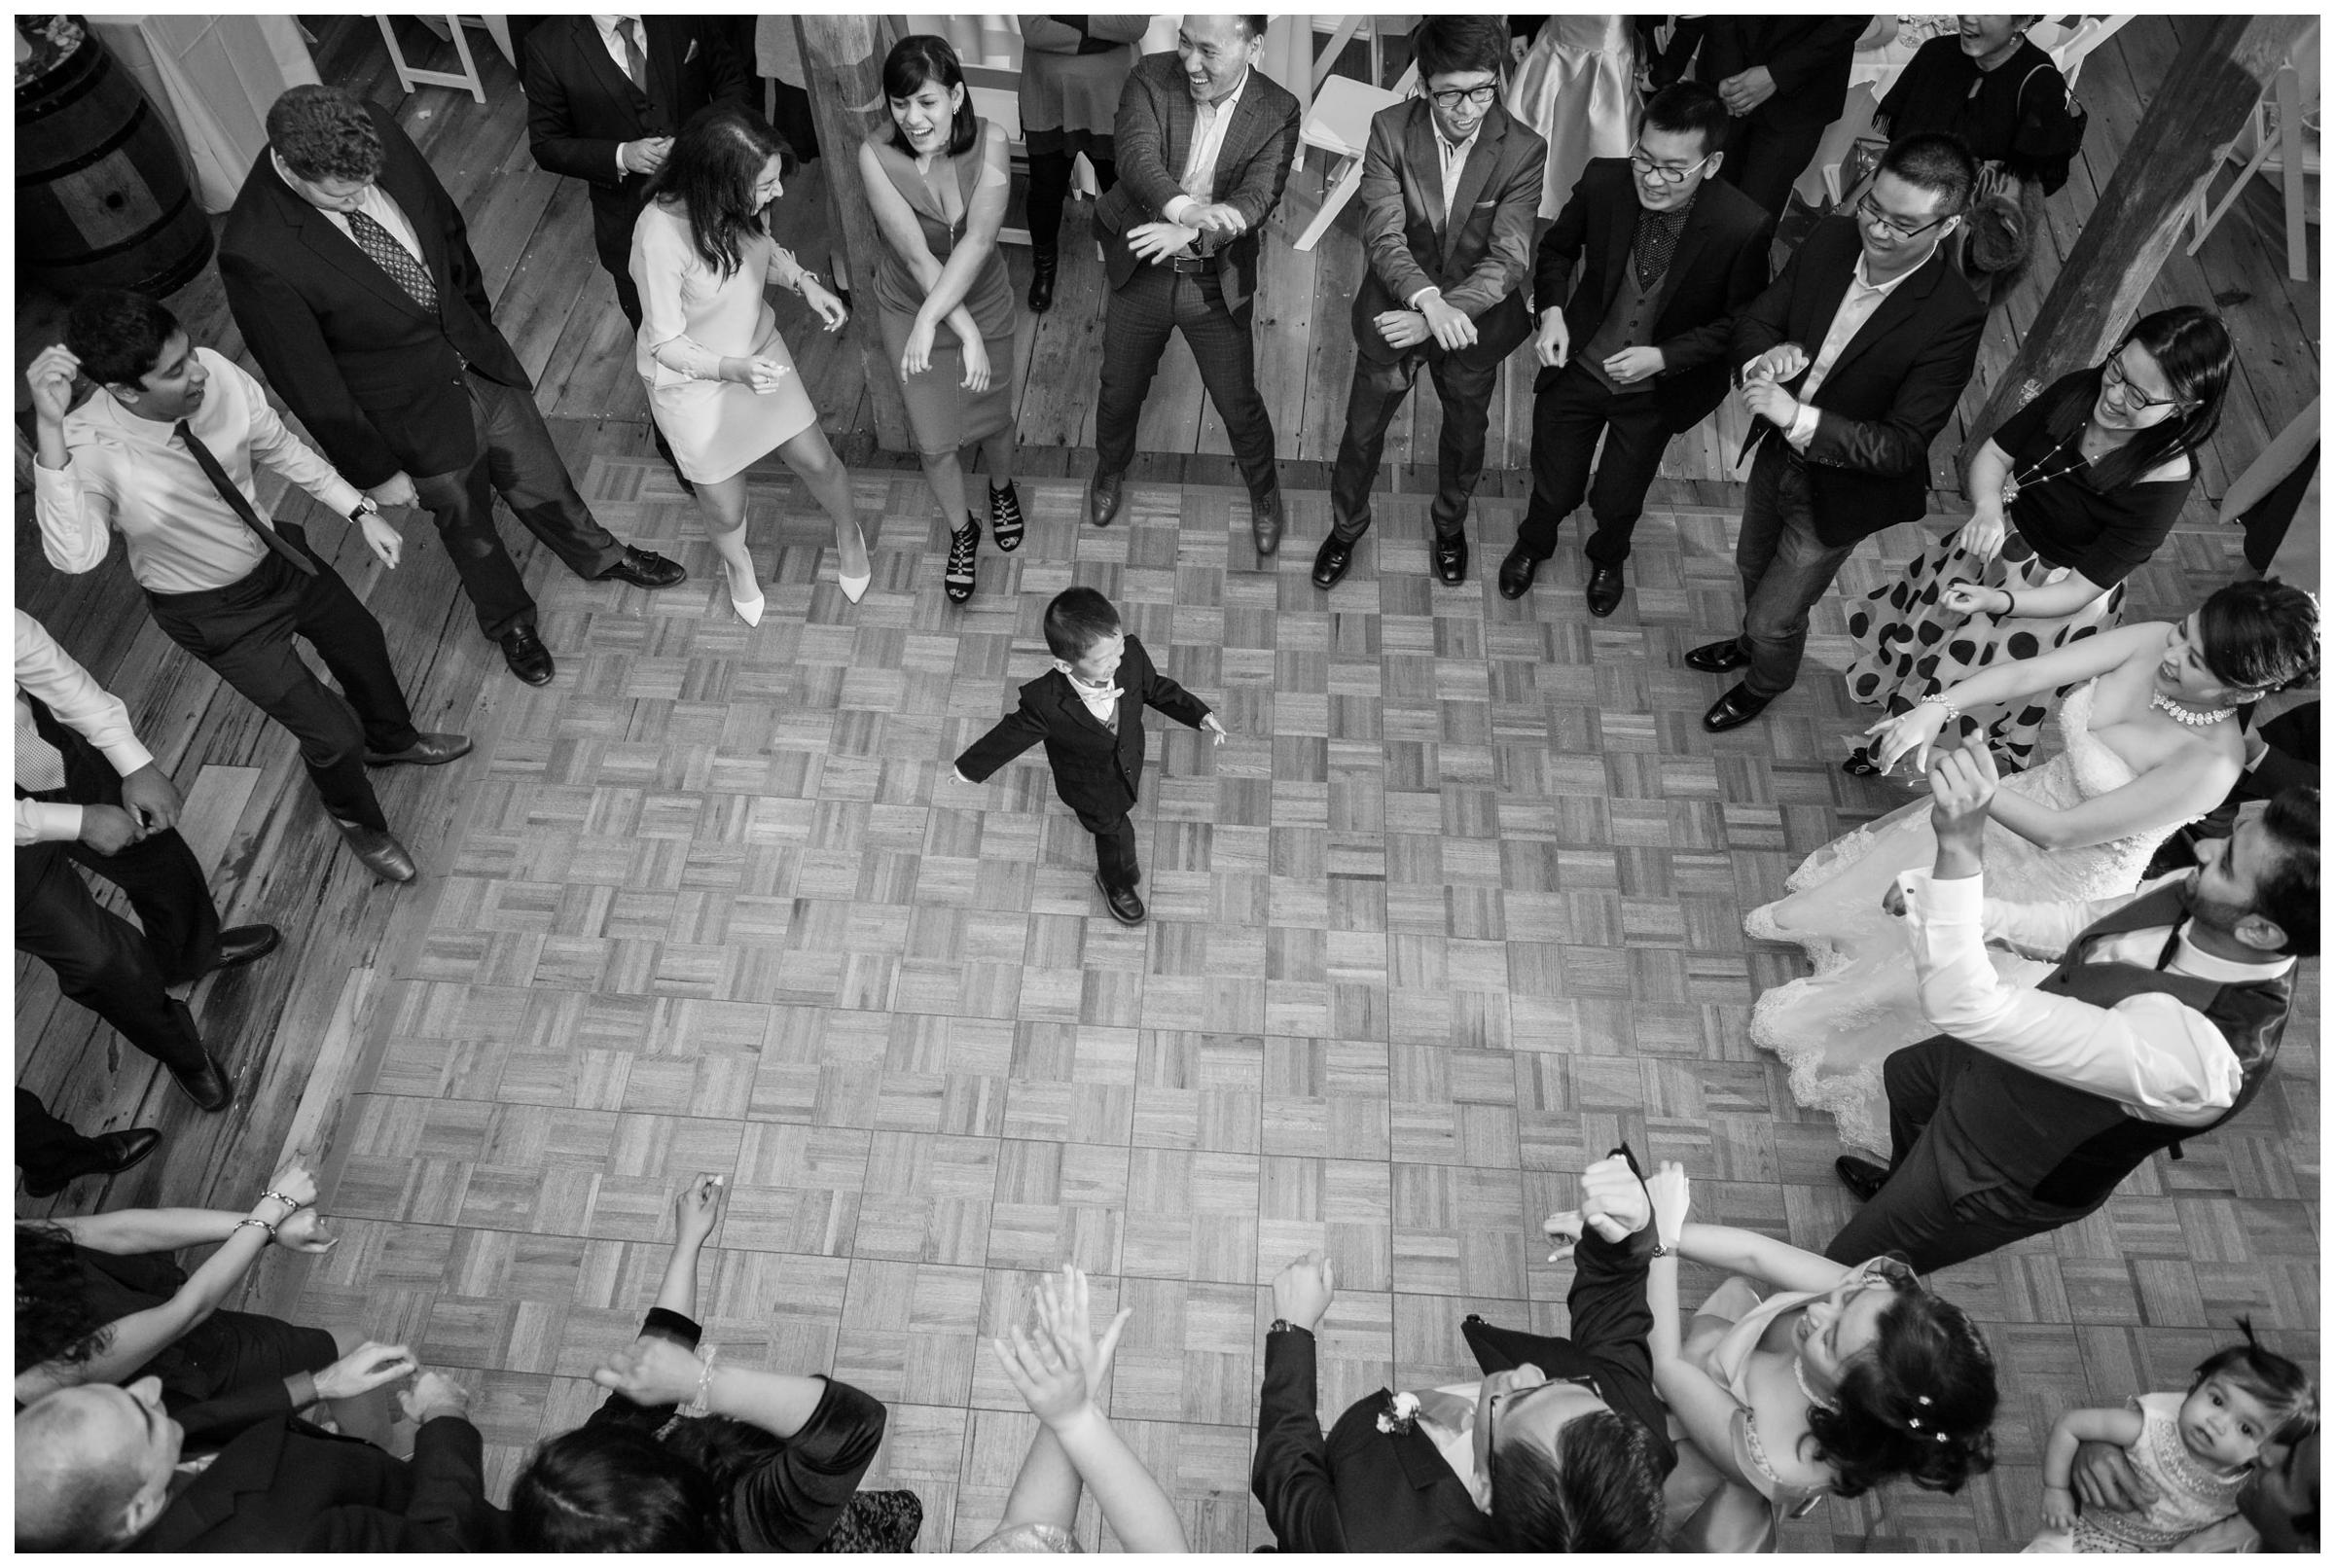 The ring bearer danced in the center of the floor during a rustic wedding reception.